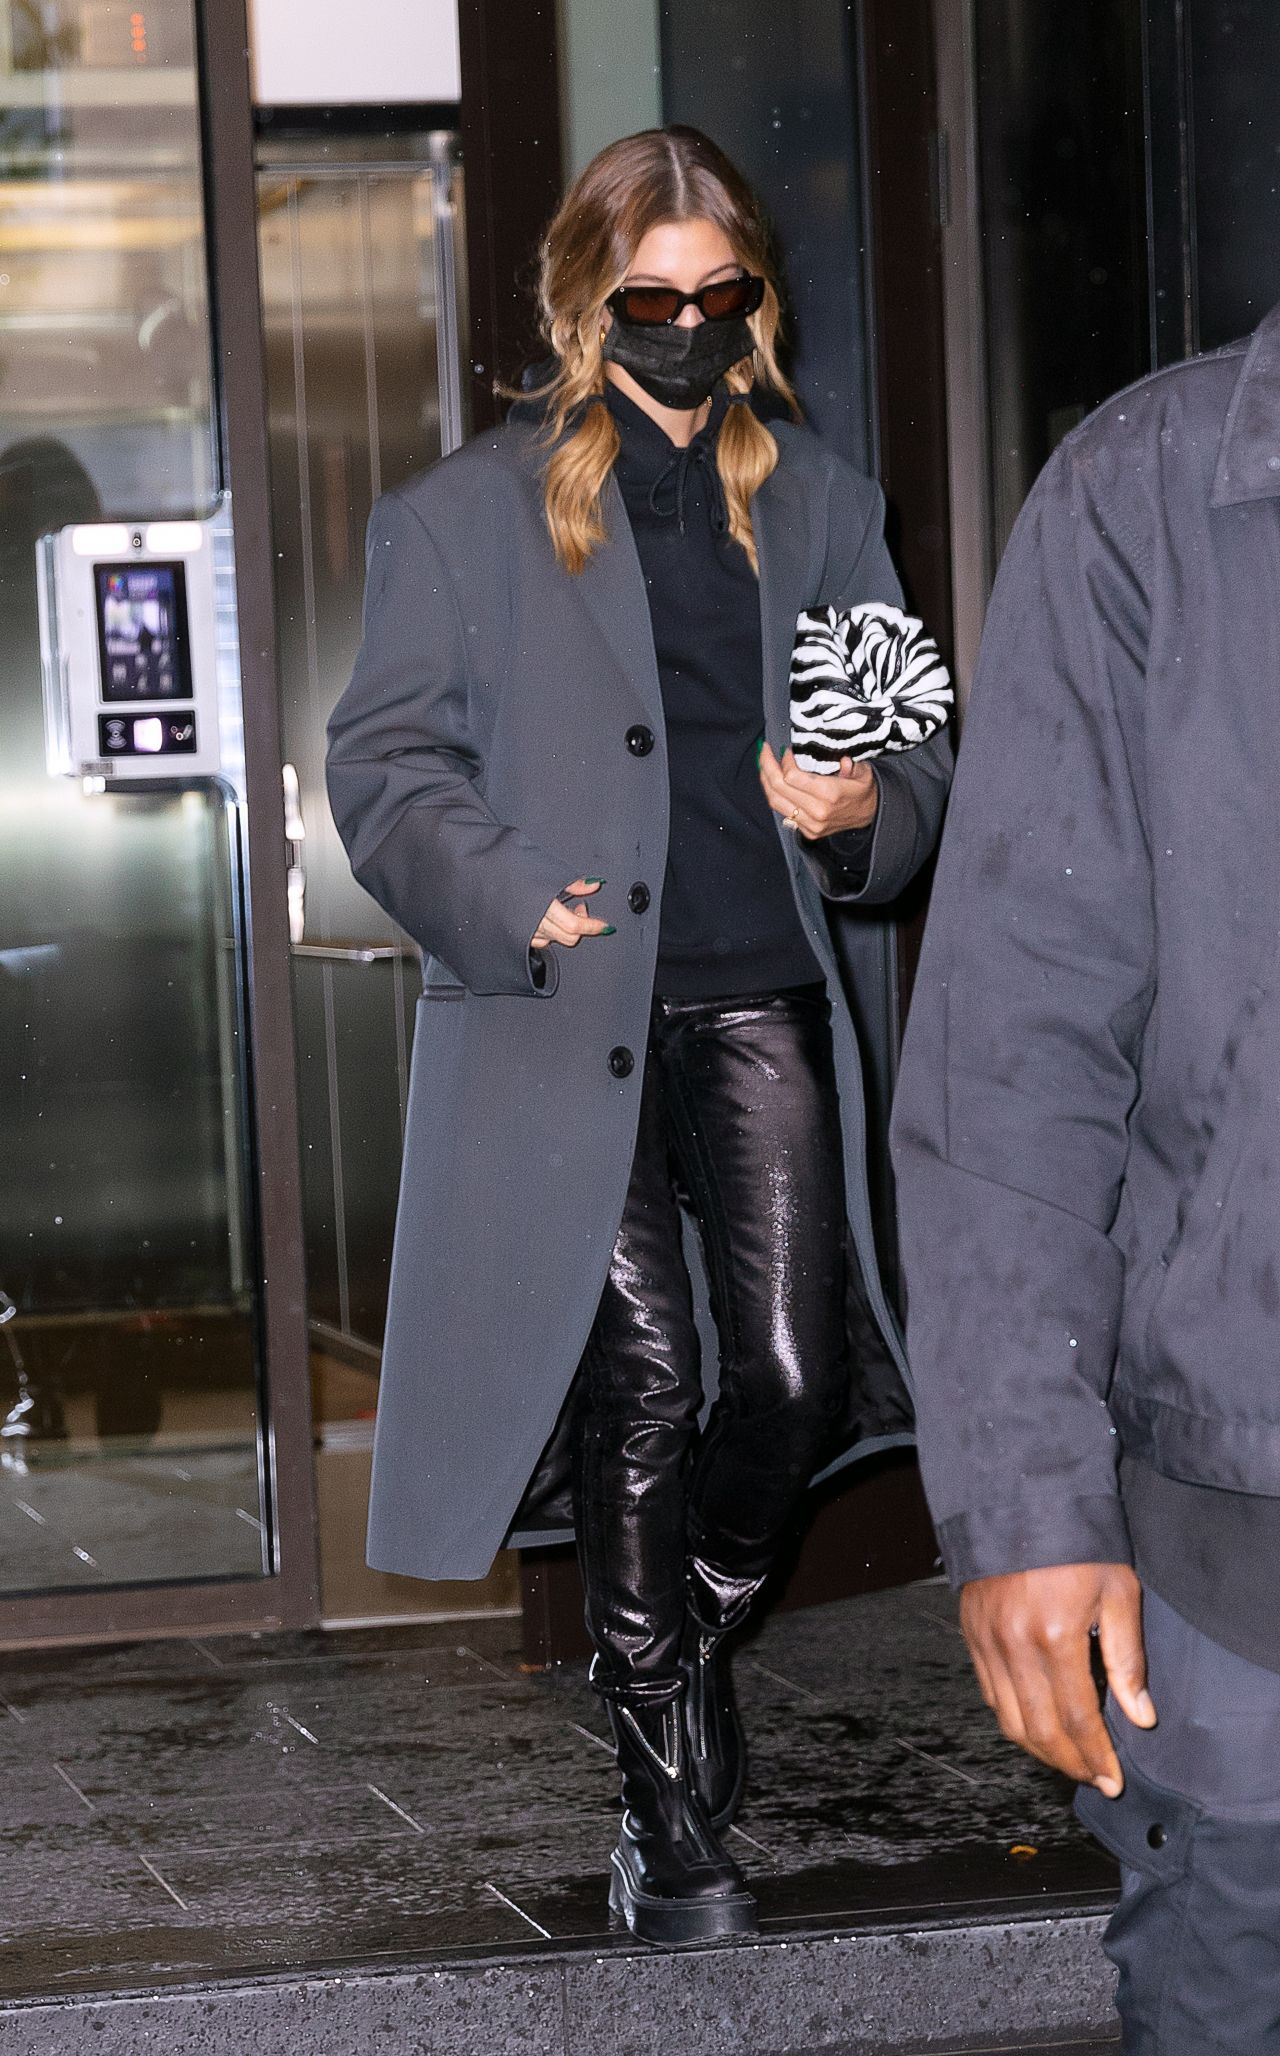 hailey-bieber-in-saint-laurent-skinny-jeans-outside-her-home-in-new-york-10-16-2020